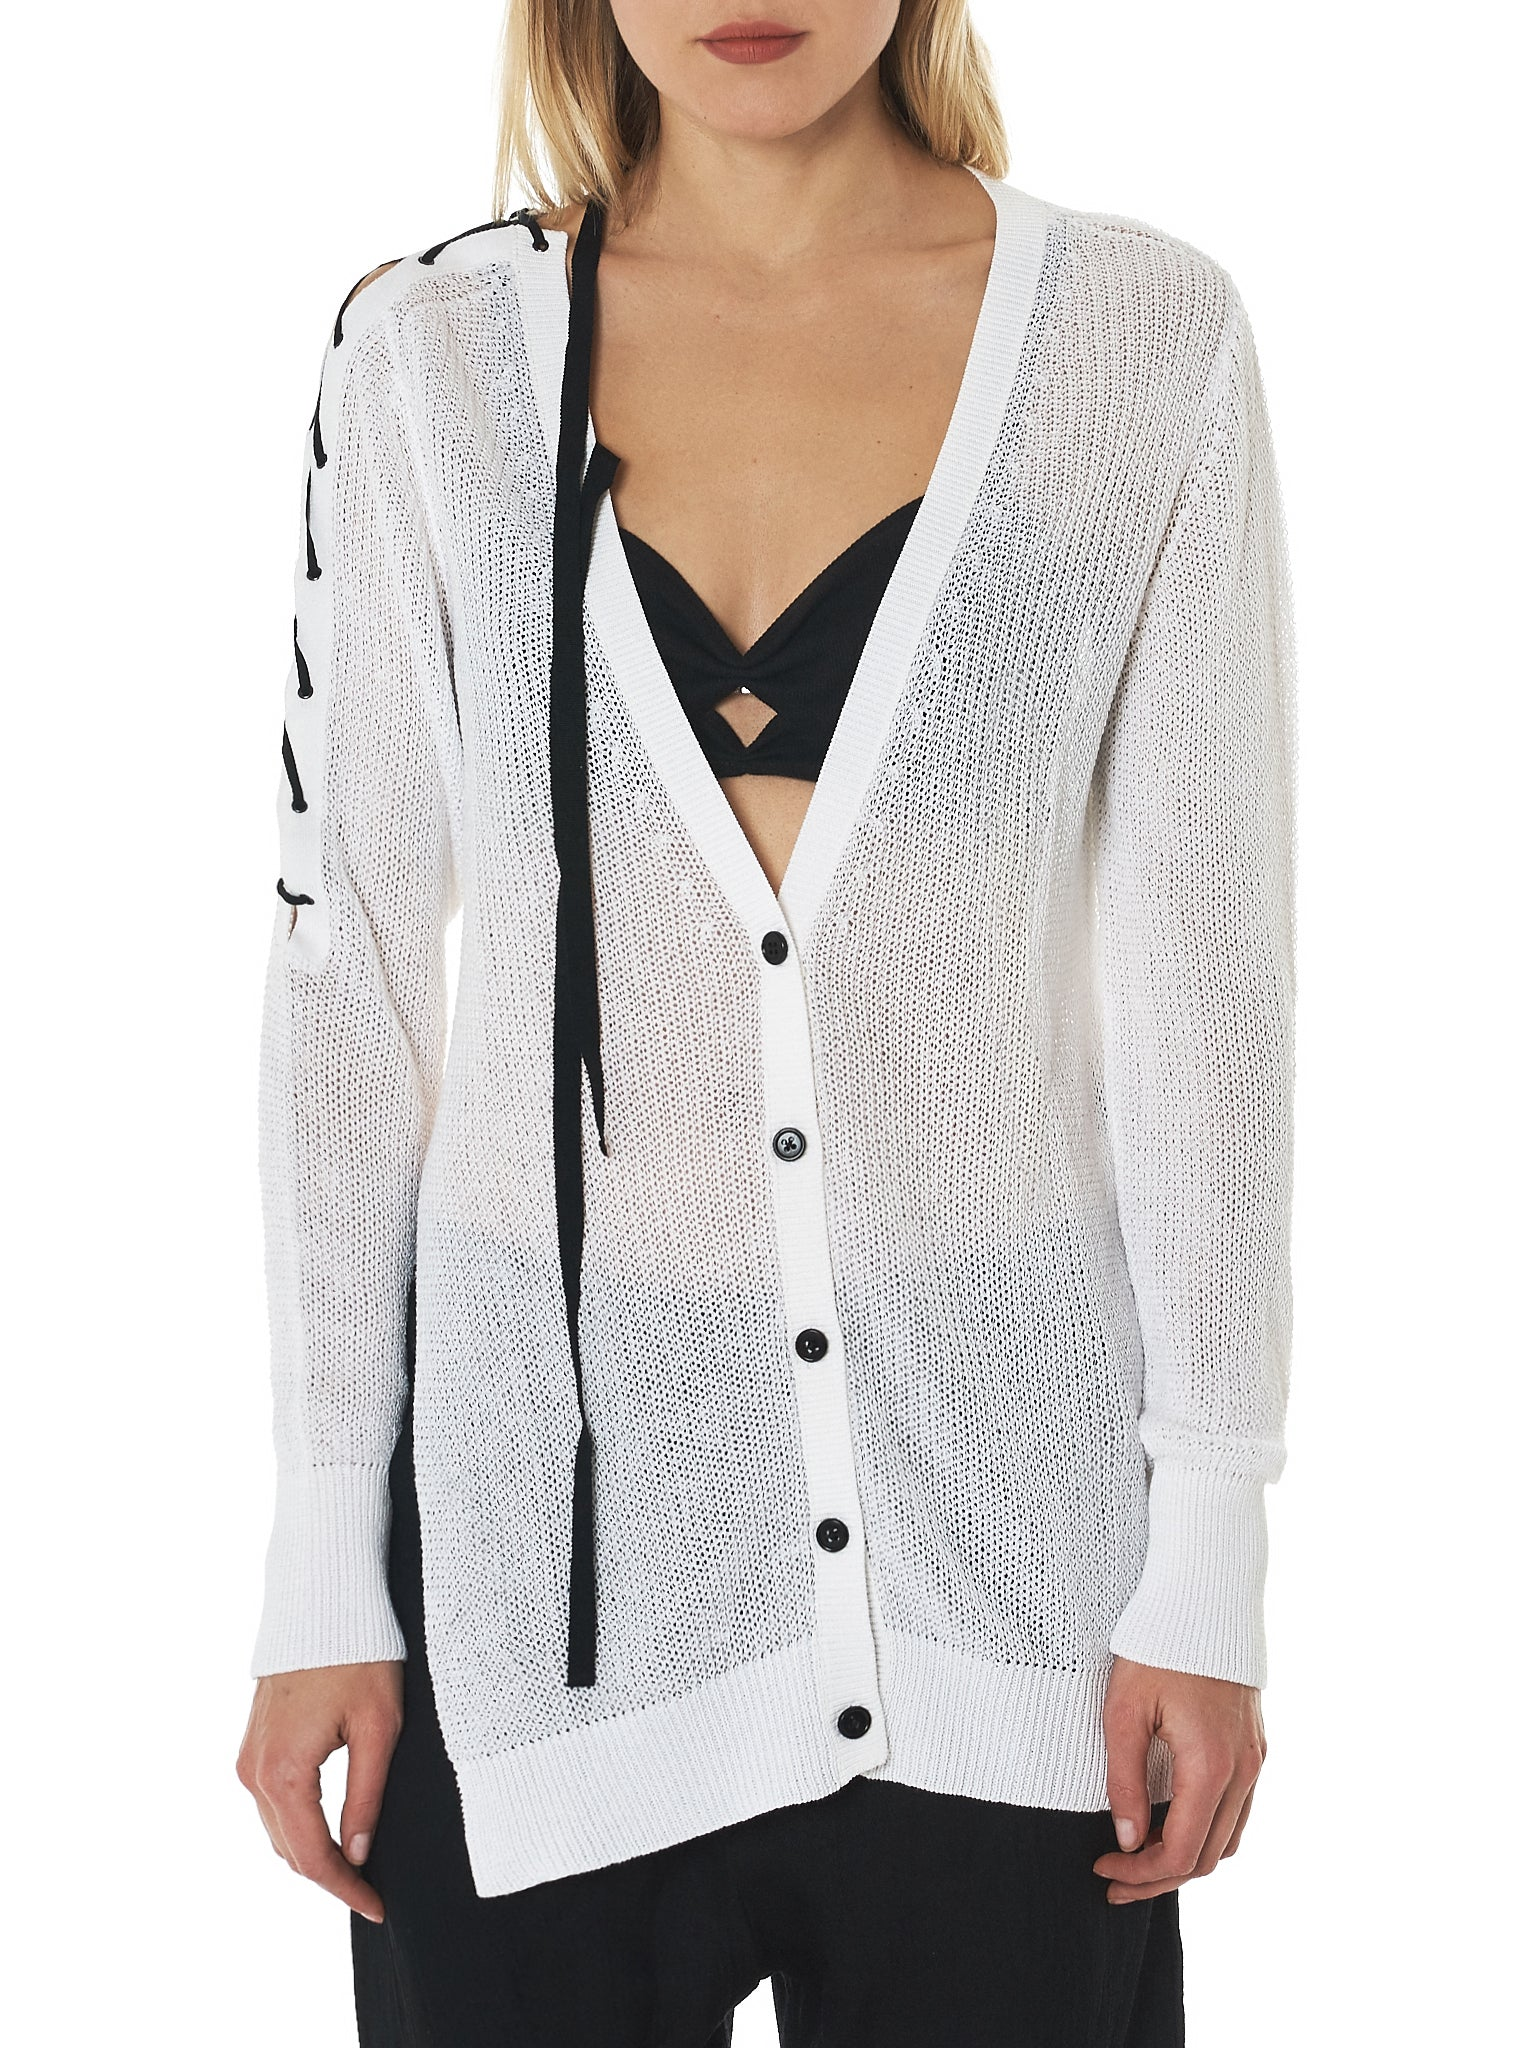 Ann Demeulemeester Lace-Up Cardigan - Hlorenzo Front